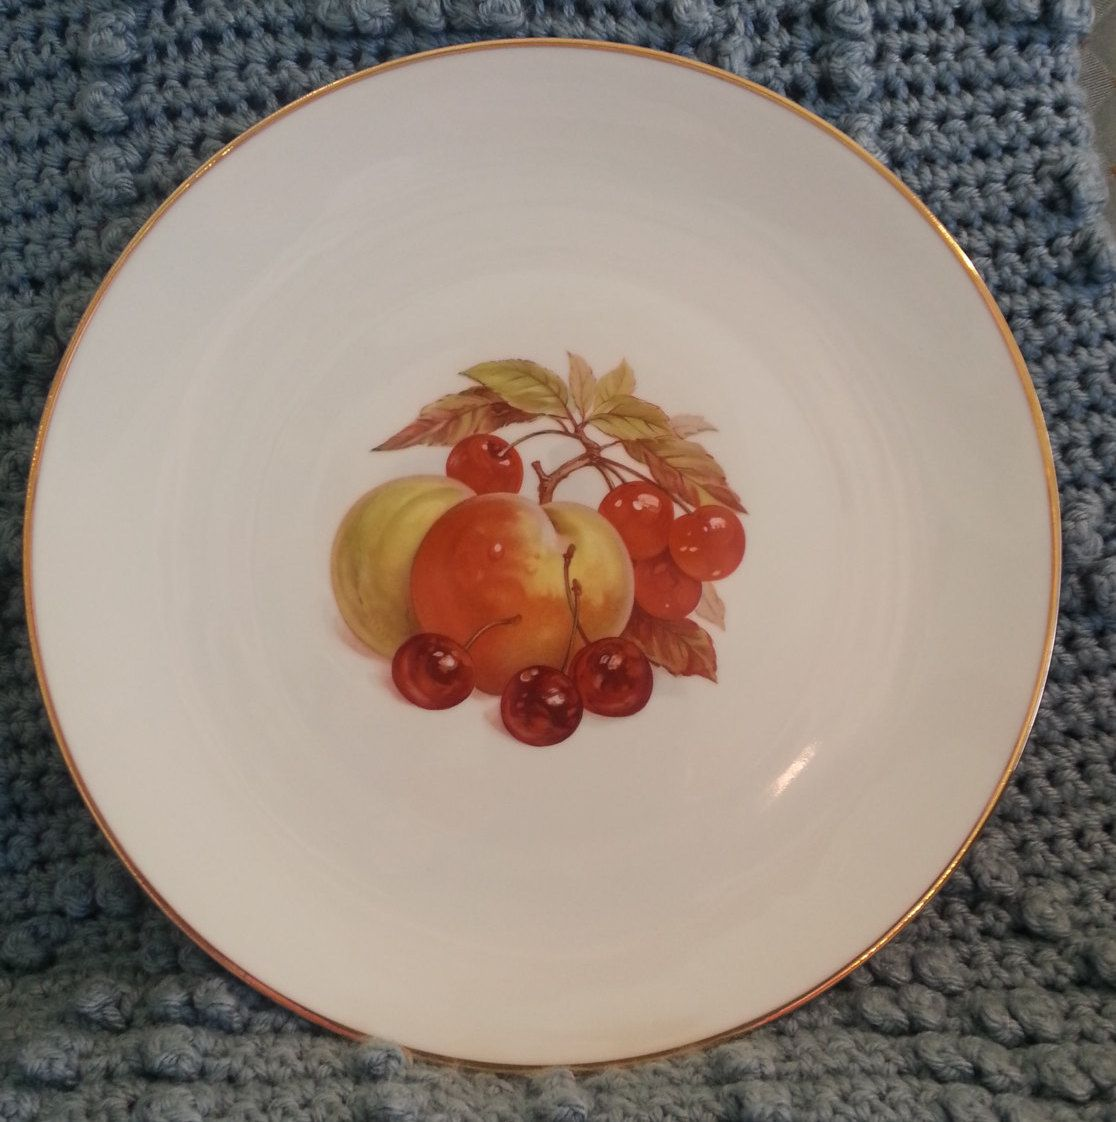 Vintage Bareuther Waldsassen plate 174 - 12\  Dinner Plate with Fruit Design - Collectible Plate & Vintage Bareuther Waldsassen plate 174 - 12\